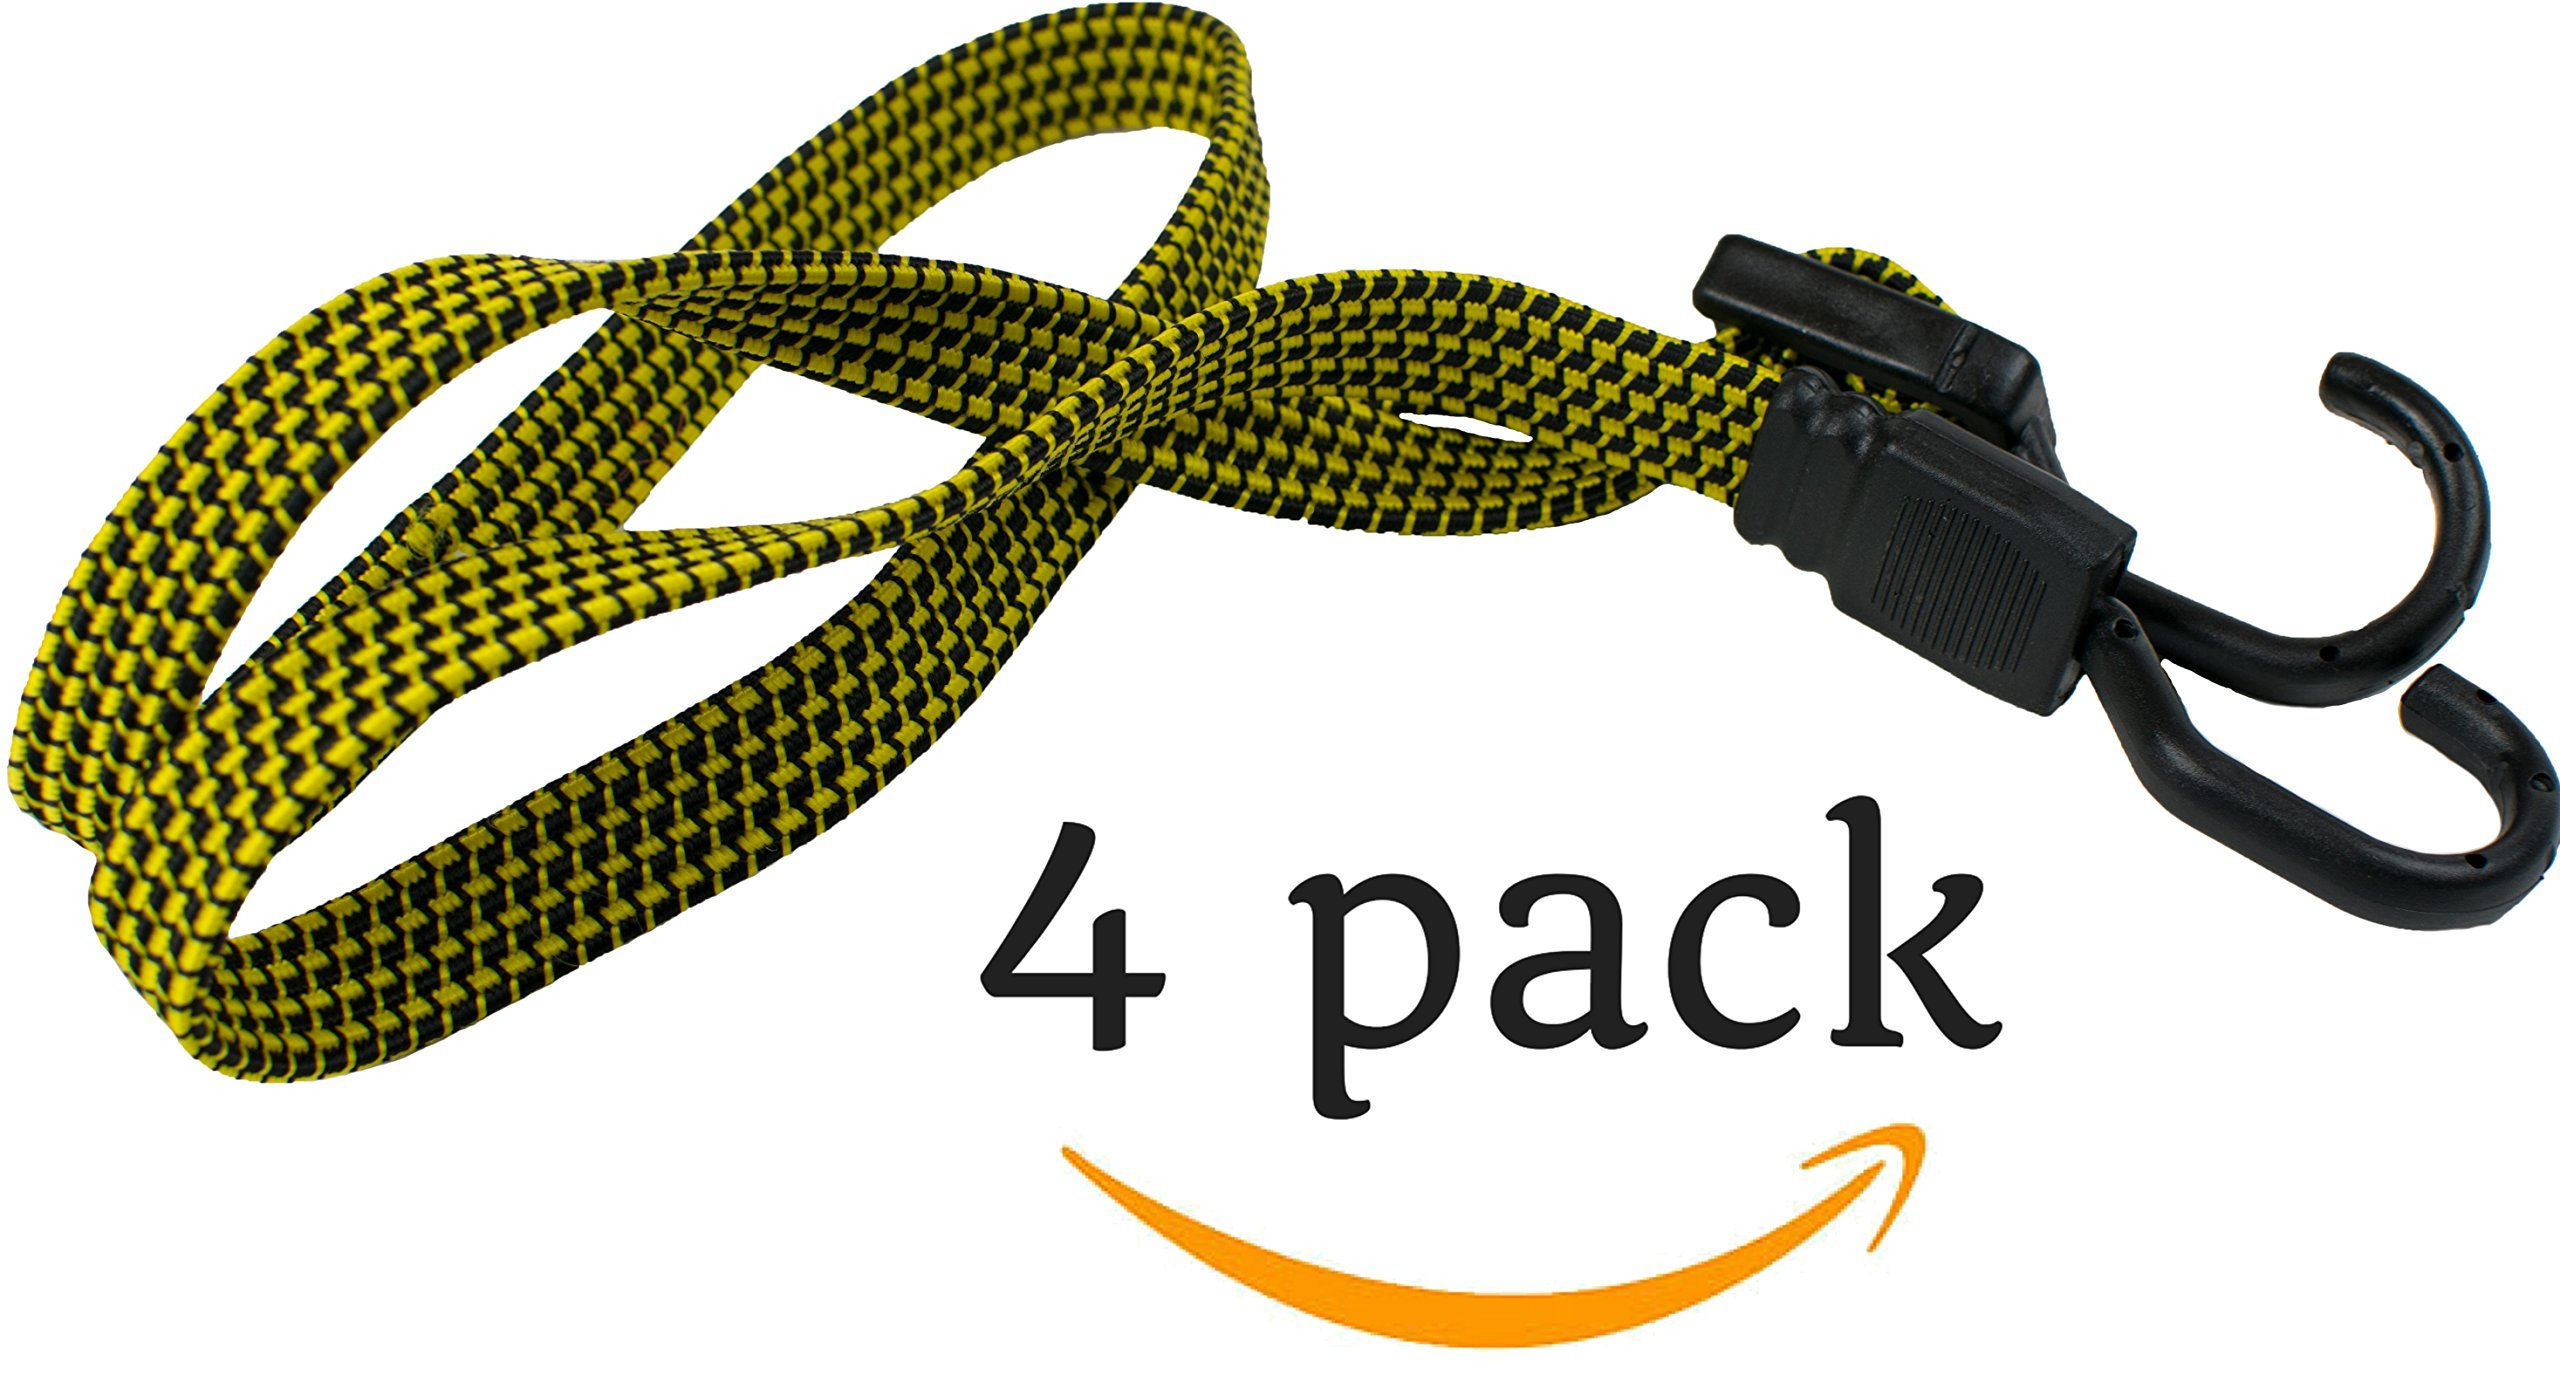 HeavyWeight Flat Bungee Cords 4 PACK with BONUS 4 Ball Bungees | 48'' INCH Total Length with Adjustable Length Hooks | Hand Carts, Dolly, Cargo, Moving, Camping, RV, Trunk, Luggage Rack, Tarp Tie Down